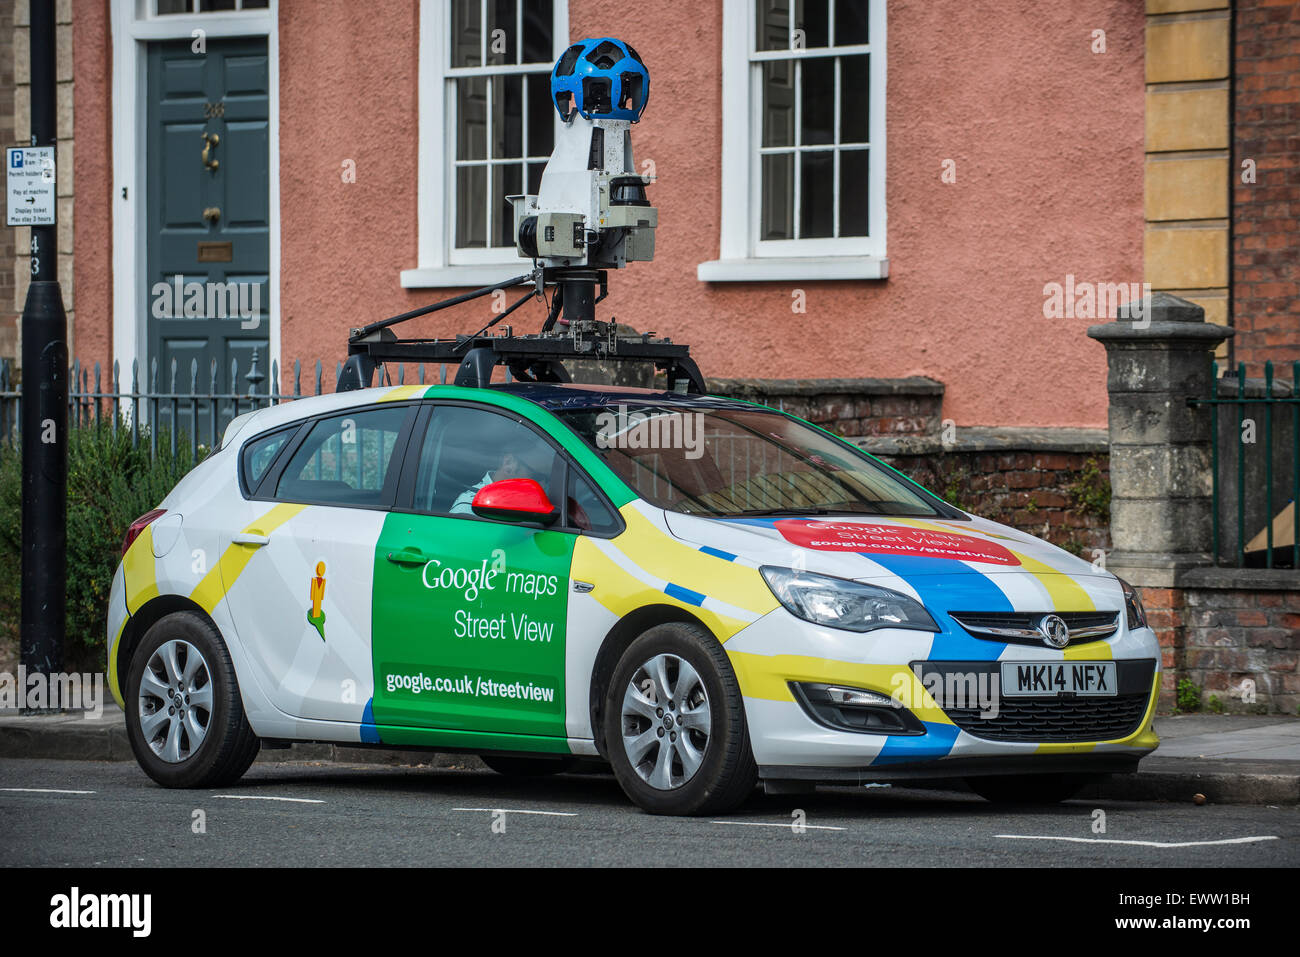 A Google Street View Car On The Roads Of Bristol In The